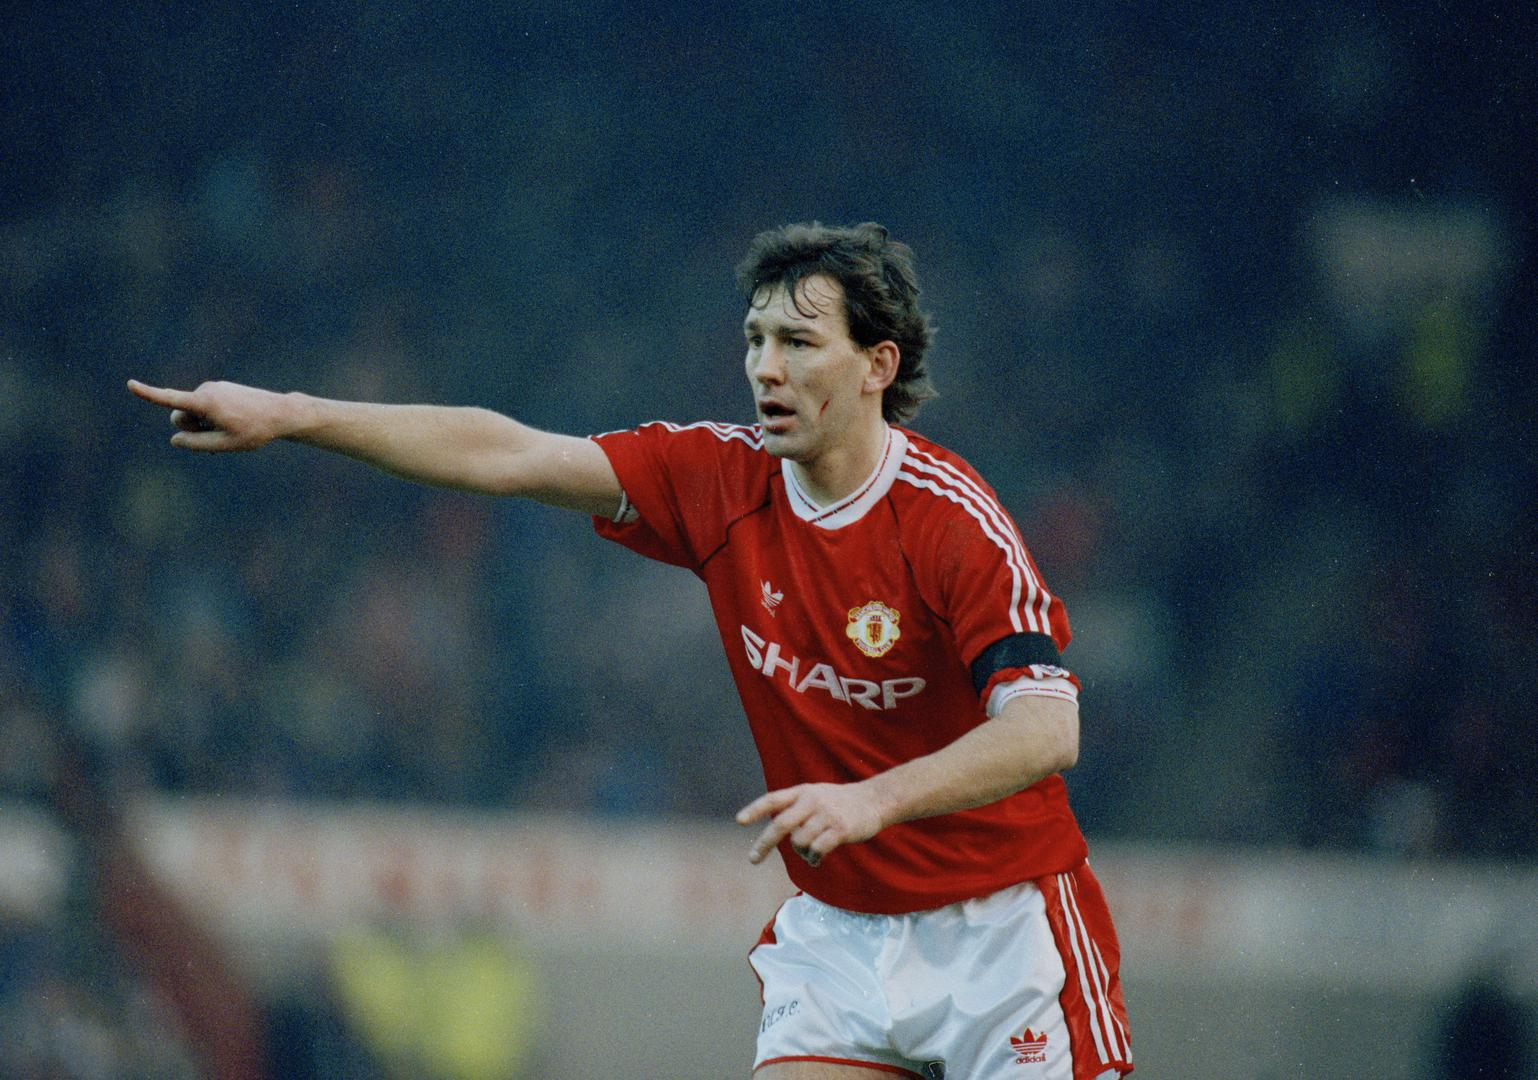 Bryan Robson playing for United.